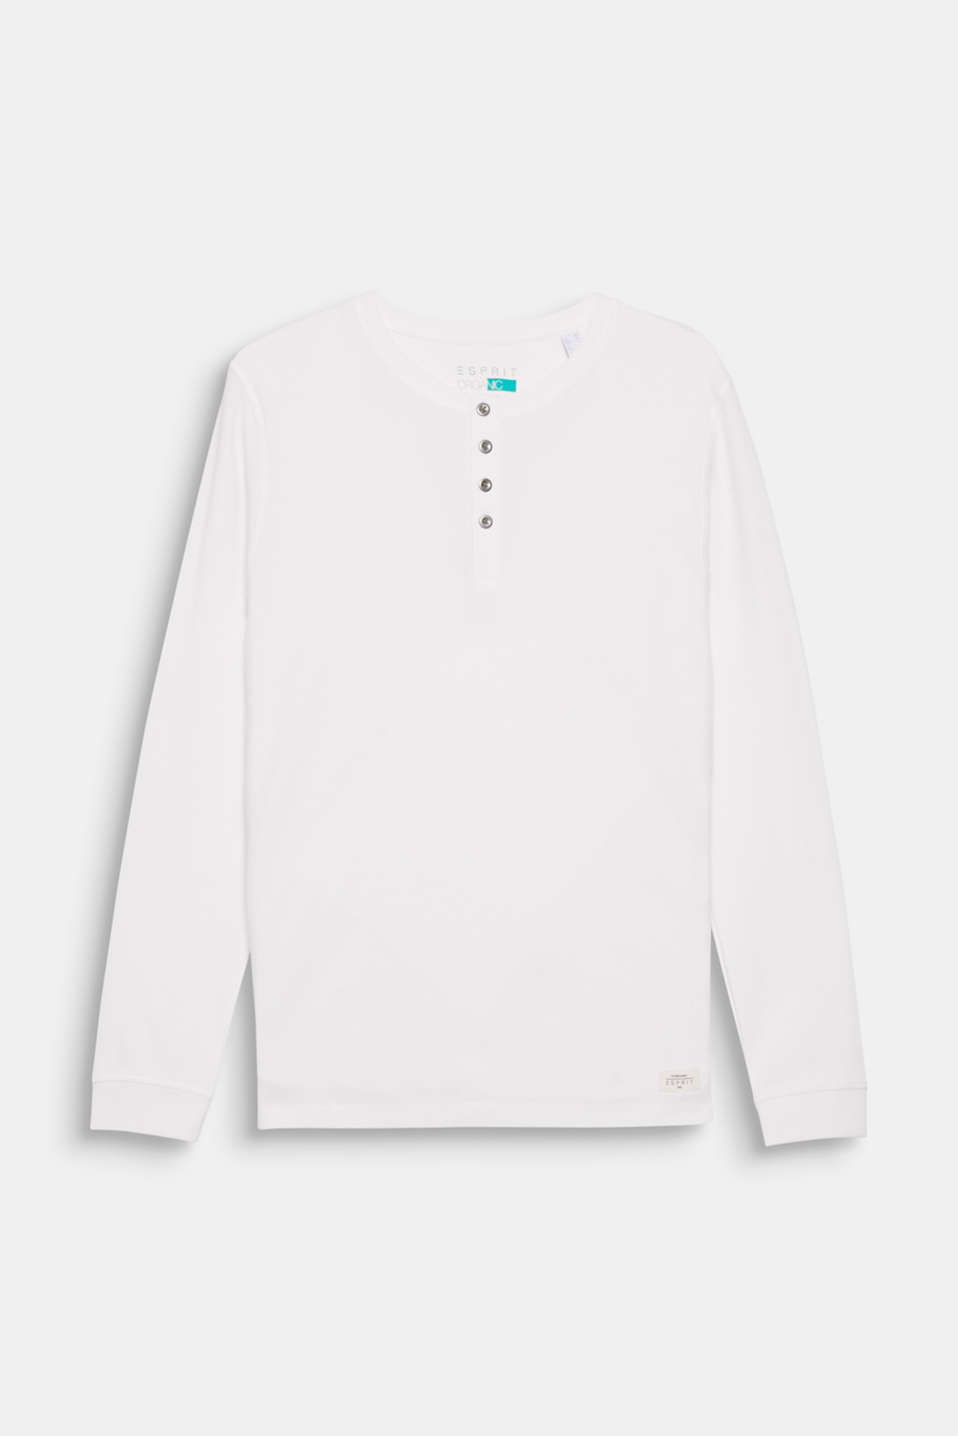 An elegant basic: long sleeve top with a round neckline containing environmentally friendly, premium organic cotton.